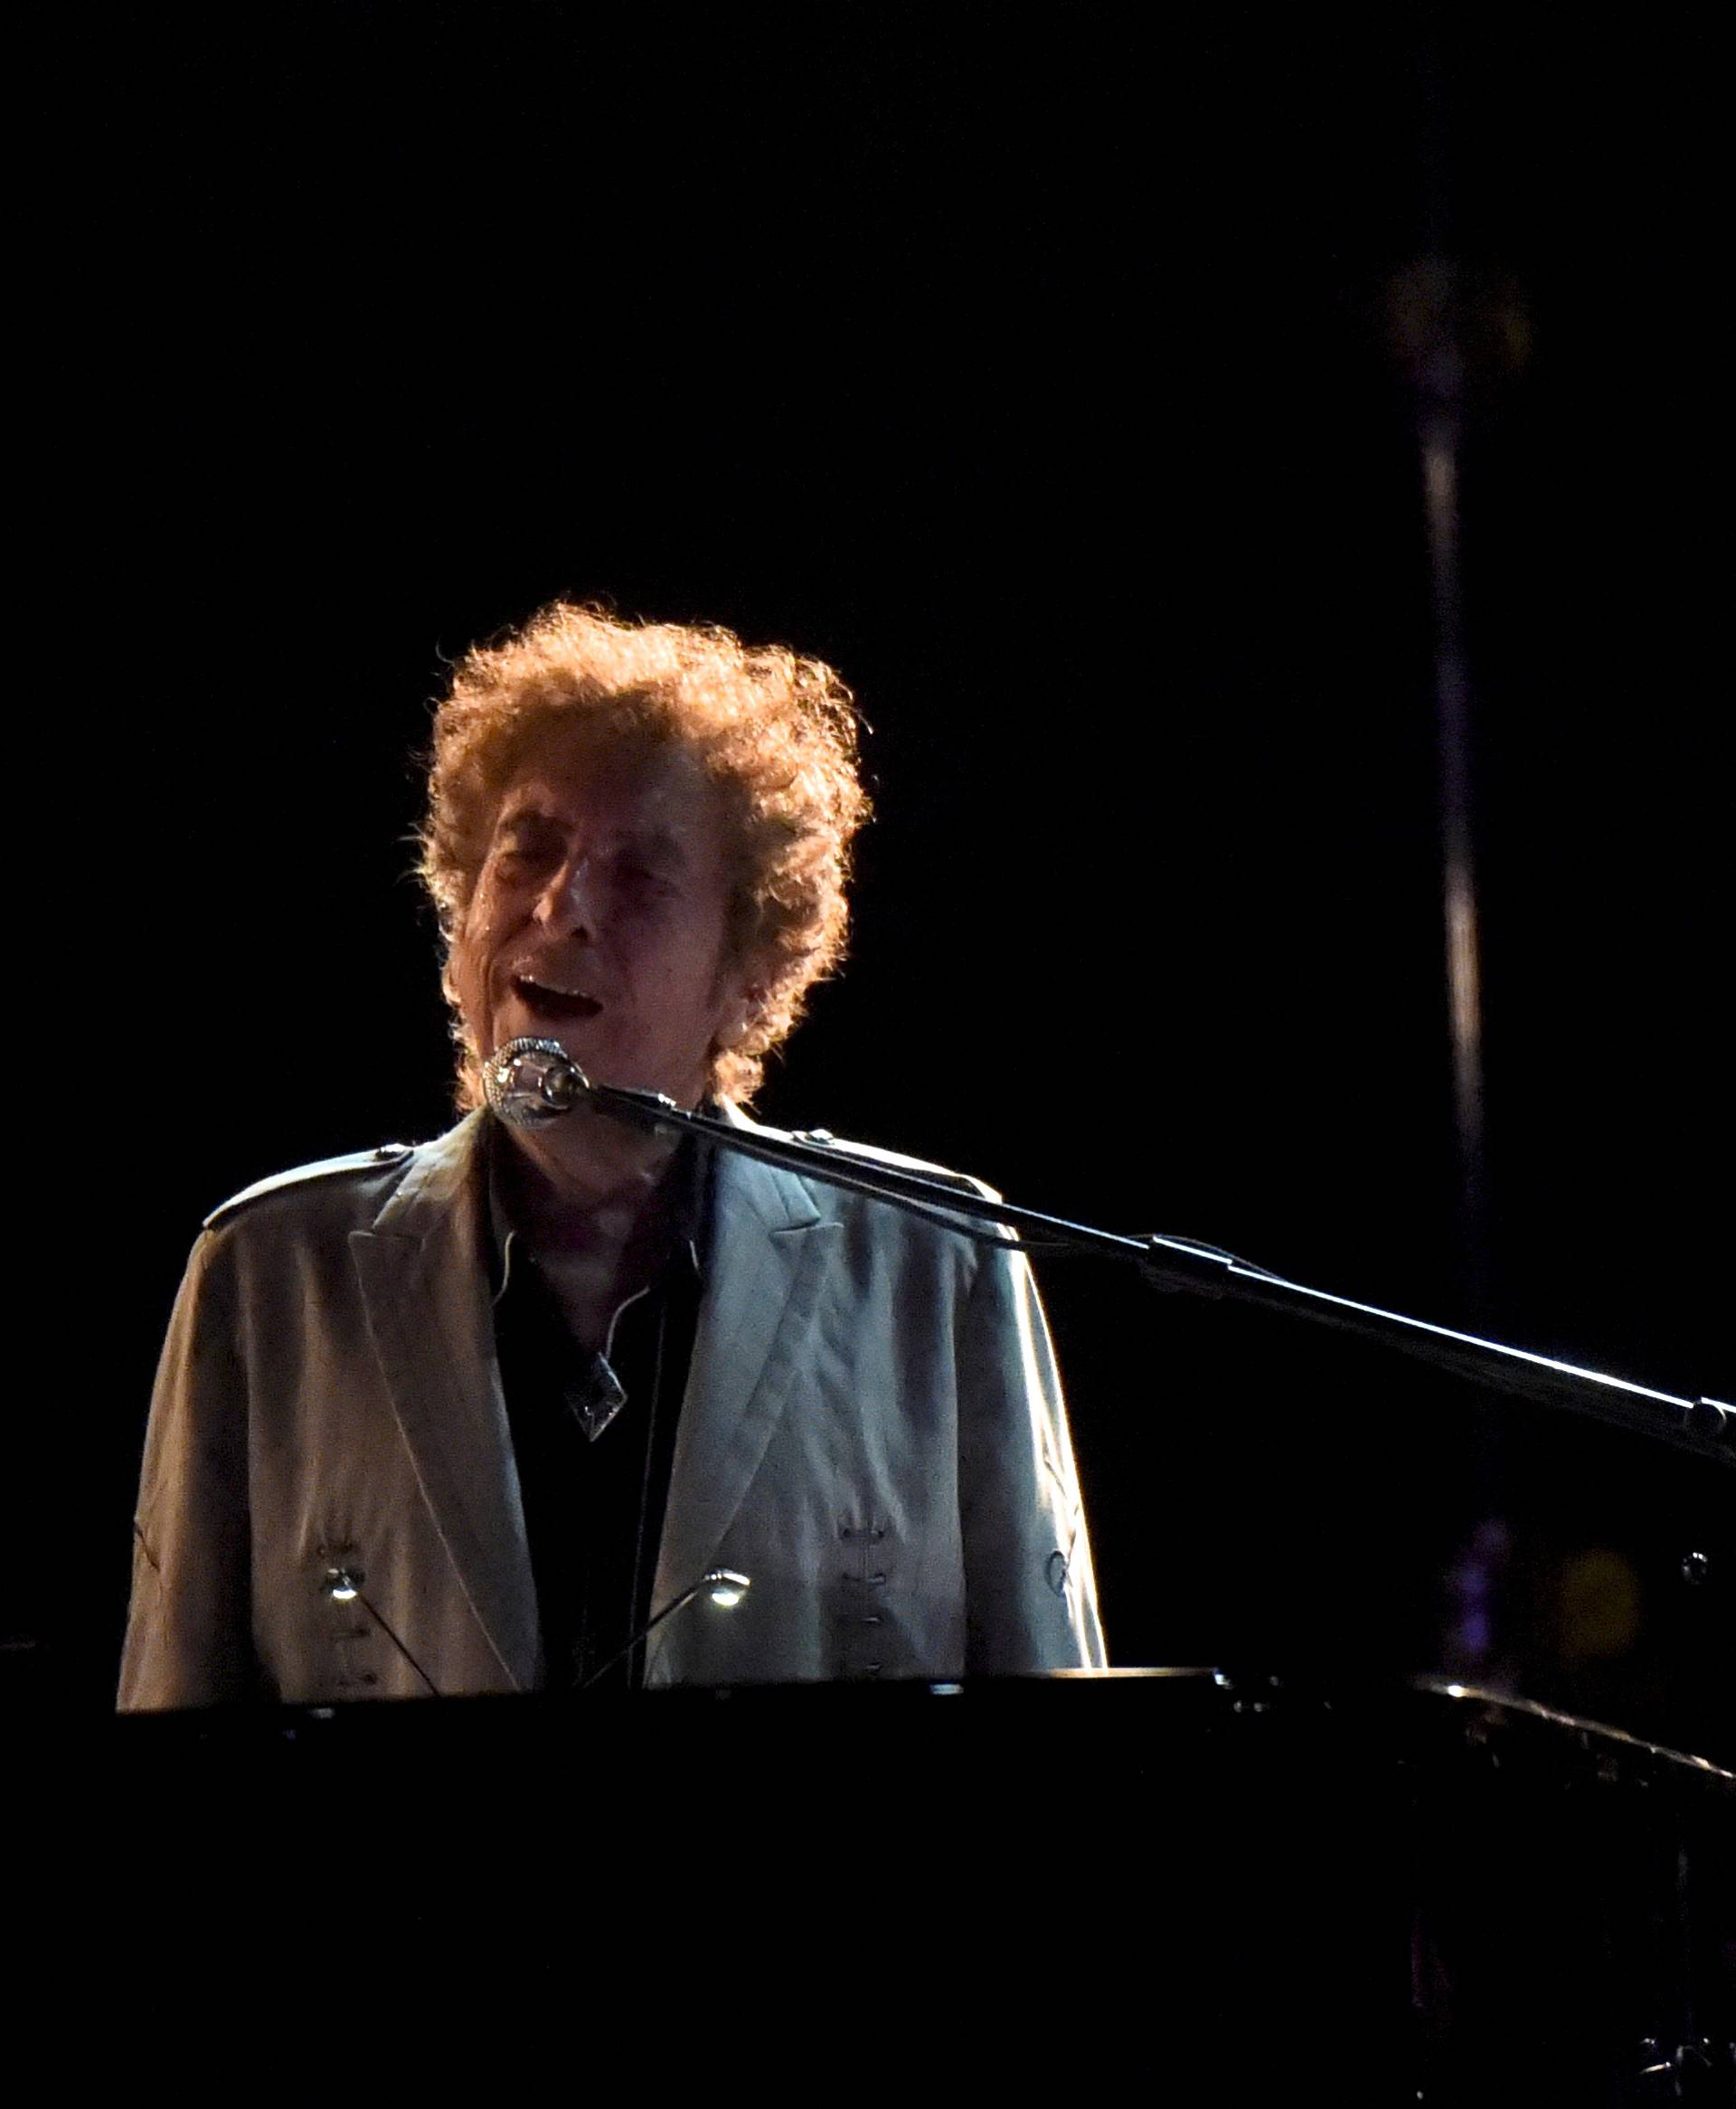 FILE PHOTO: Bob Dylan performs during the Firefly Music Festival in Dover, Delaware